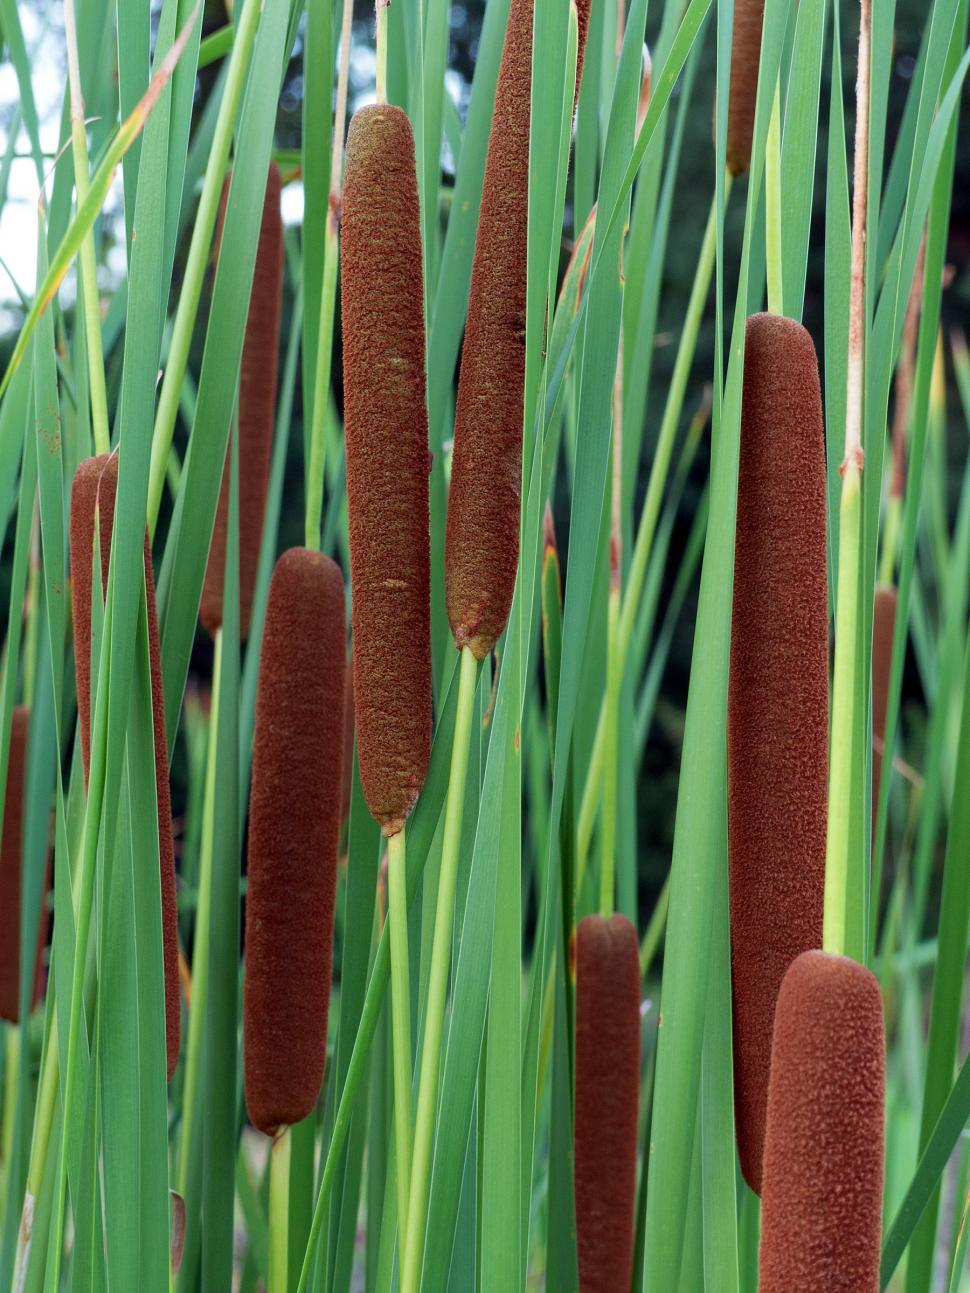 Download Free Stock Photo of Cattail Grass